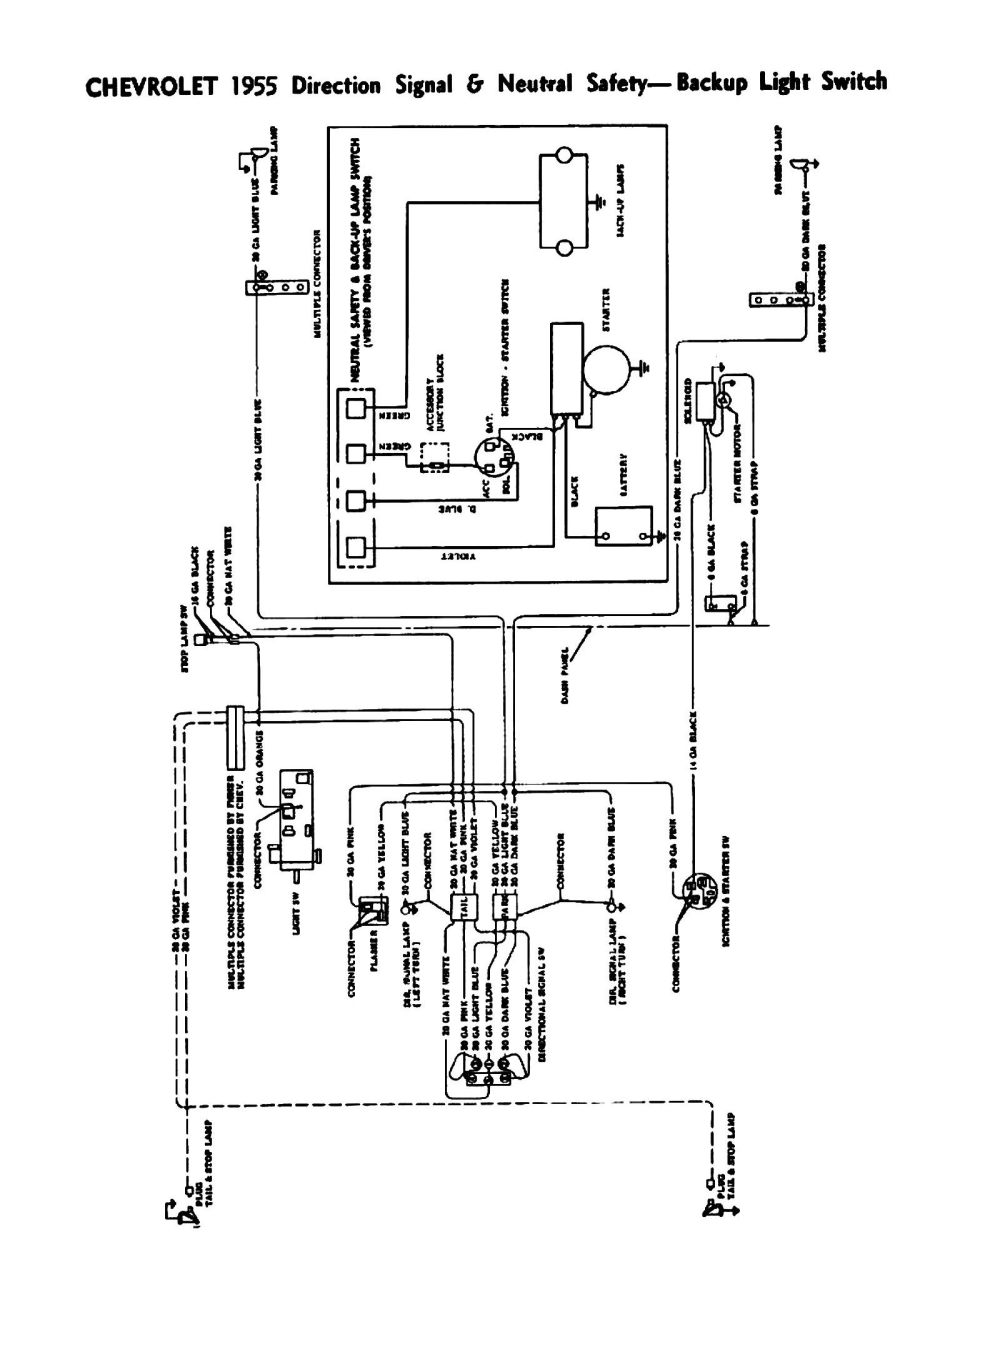 medium resolution of 1950 dodge truck wiring diagram wiring diagram third level 1984 dodge truck wiring diagram 1955 dodge truck wiring diagram